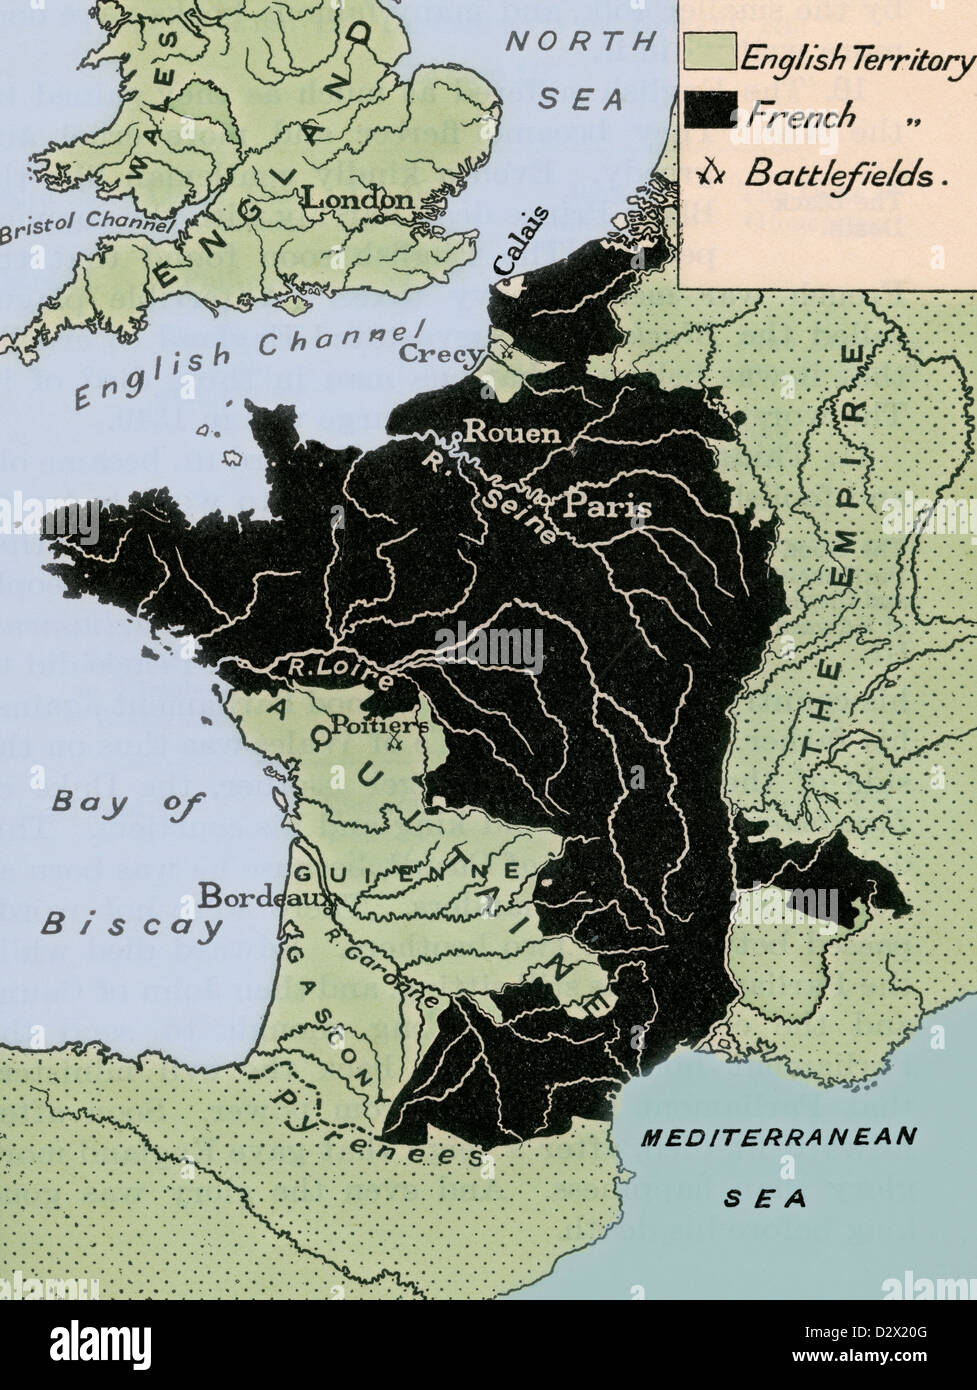 Map showing the English dominions in France after the Treaty of